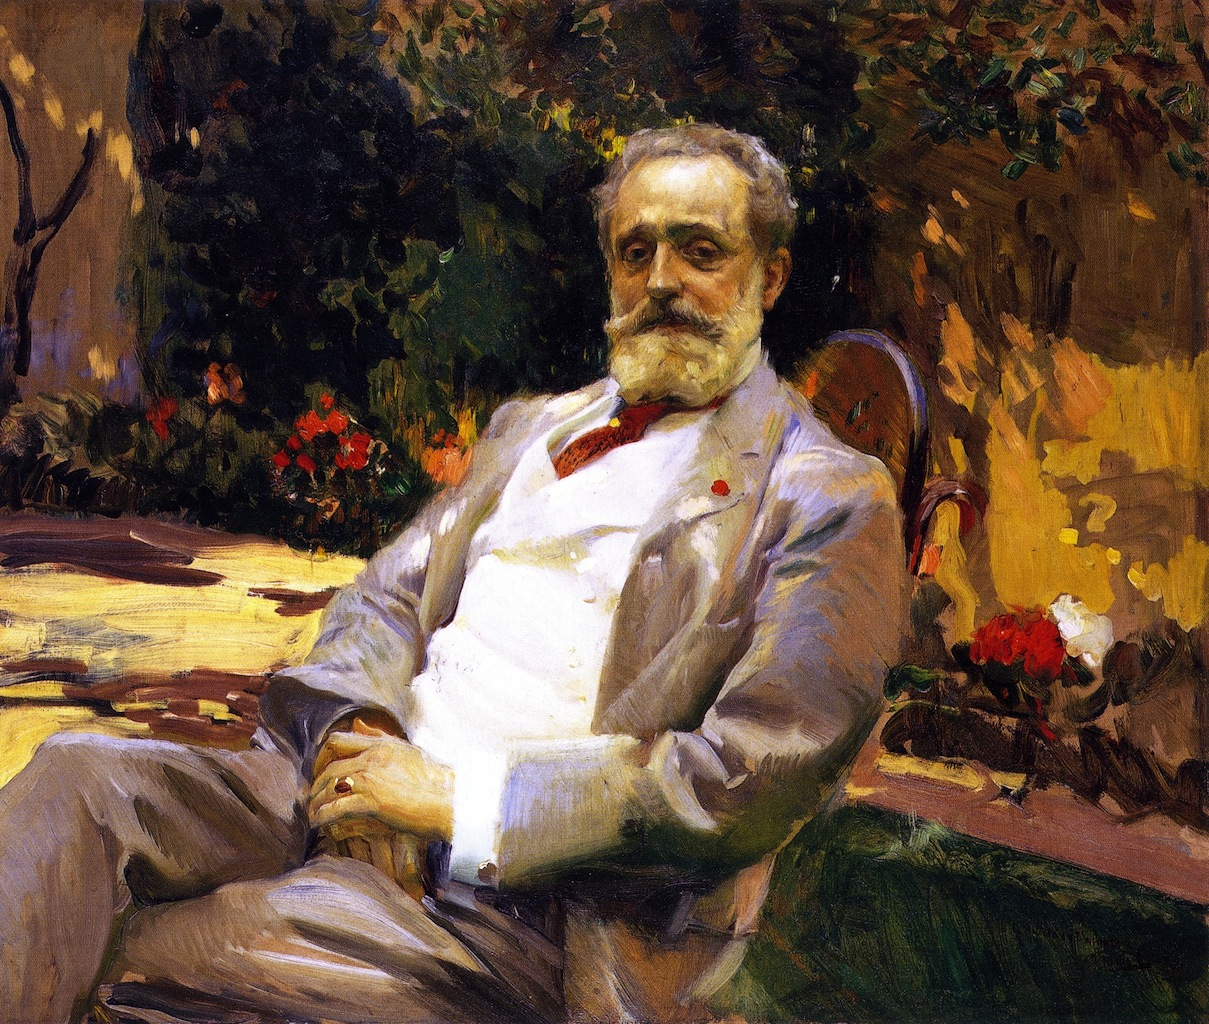 Sangria Sol Y Siesta THE MADRAZO A FAMILY OF FAMOUS REALIST PAINTERS FROM 19th CENTURY